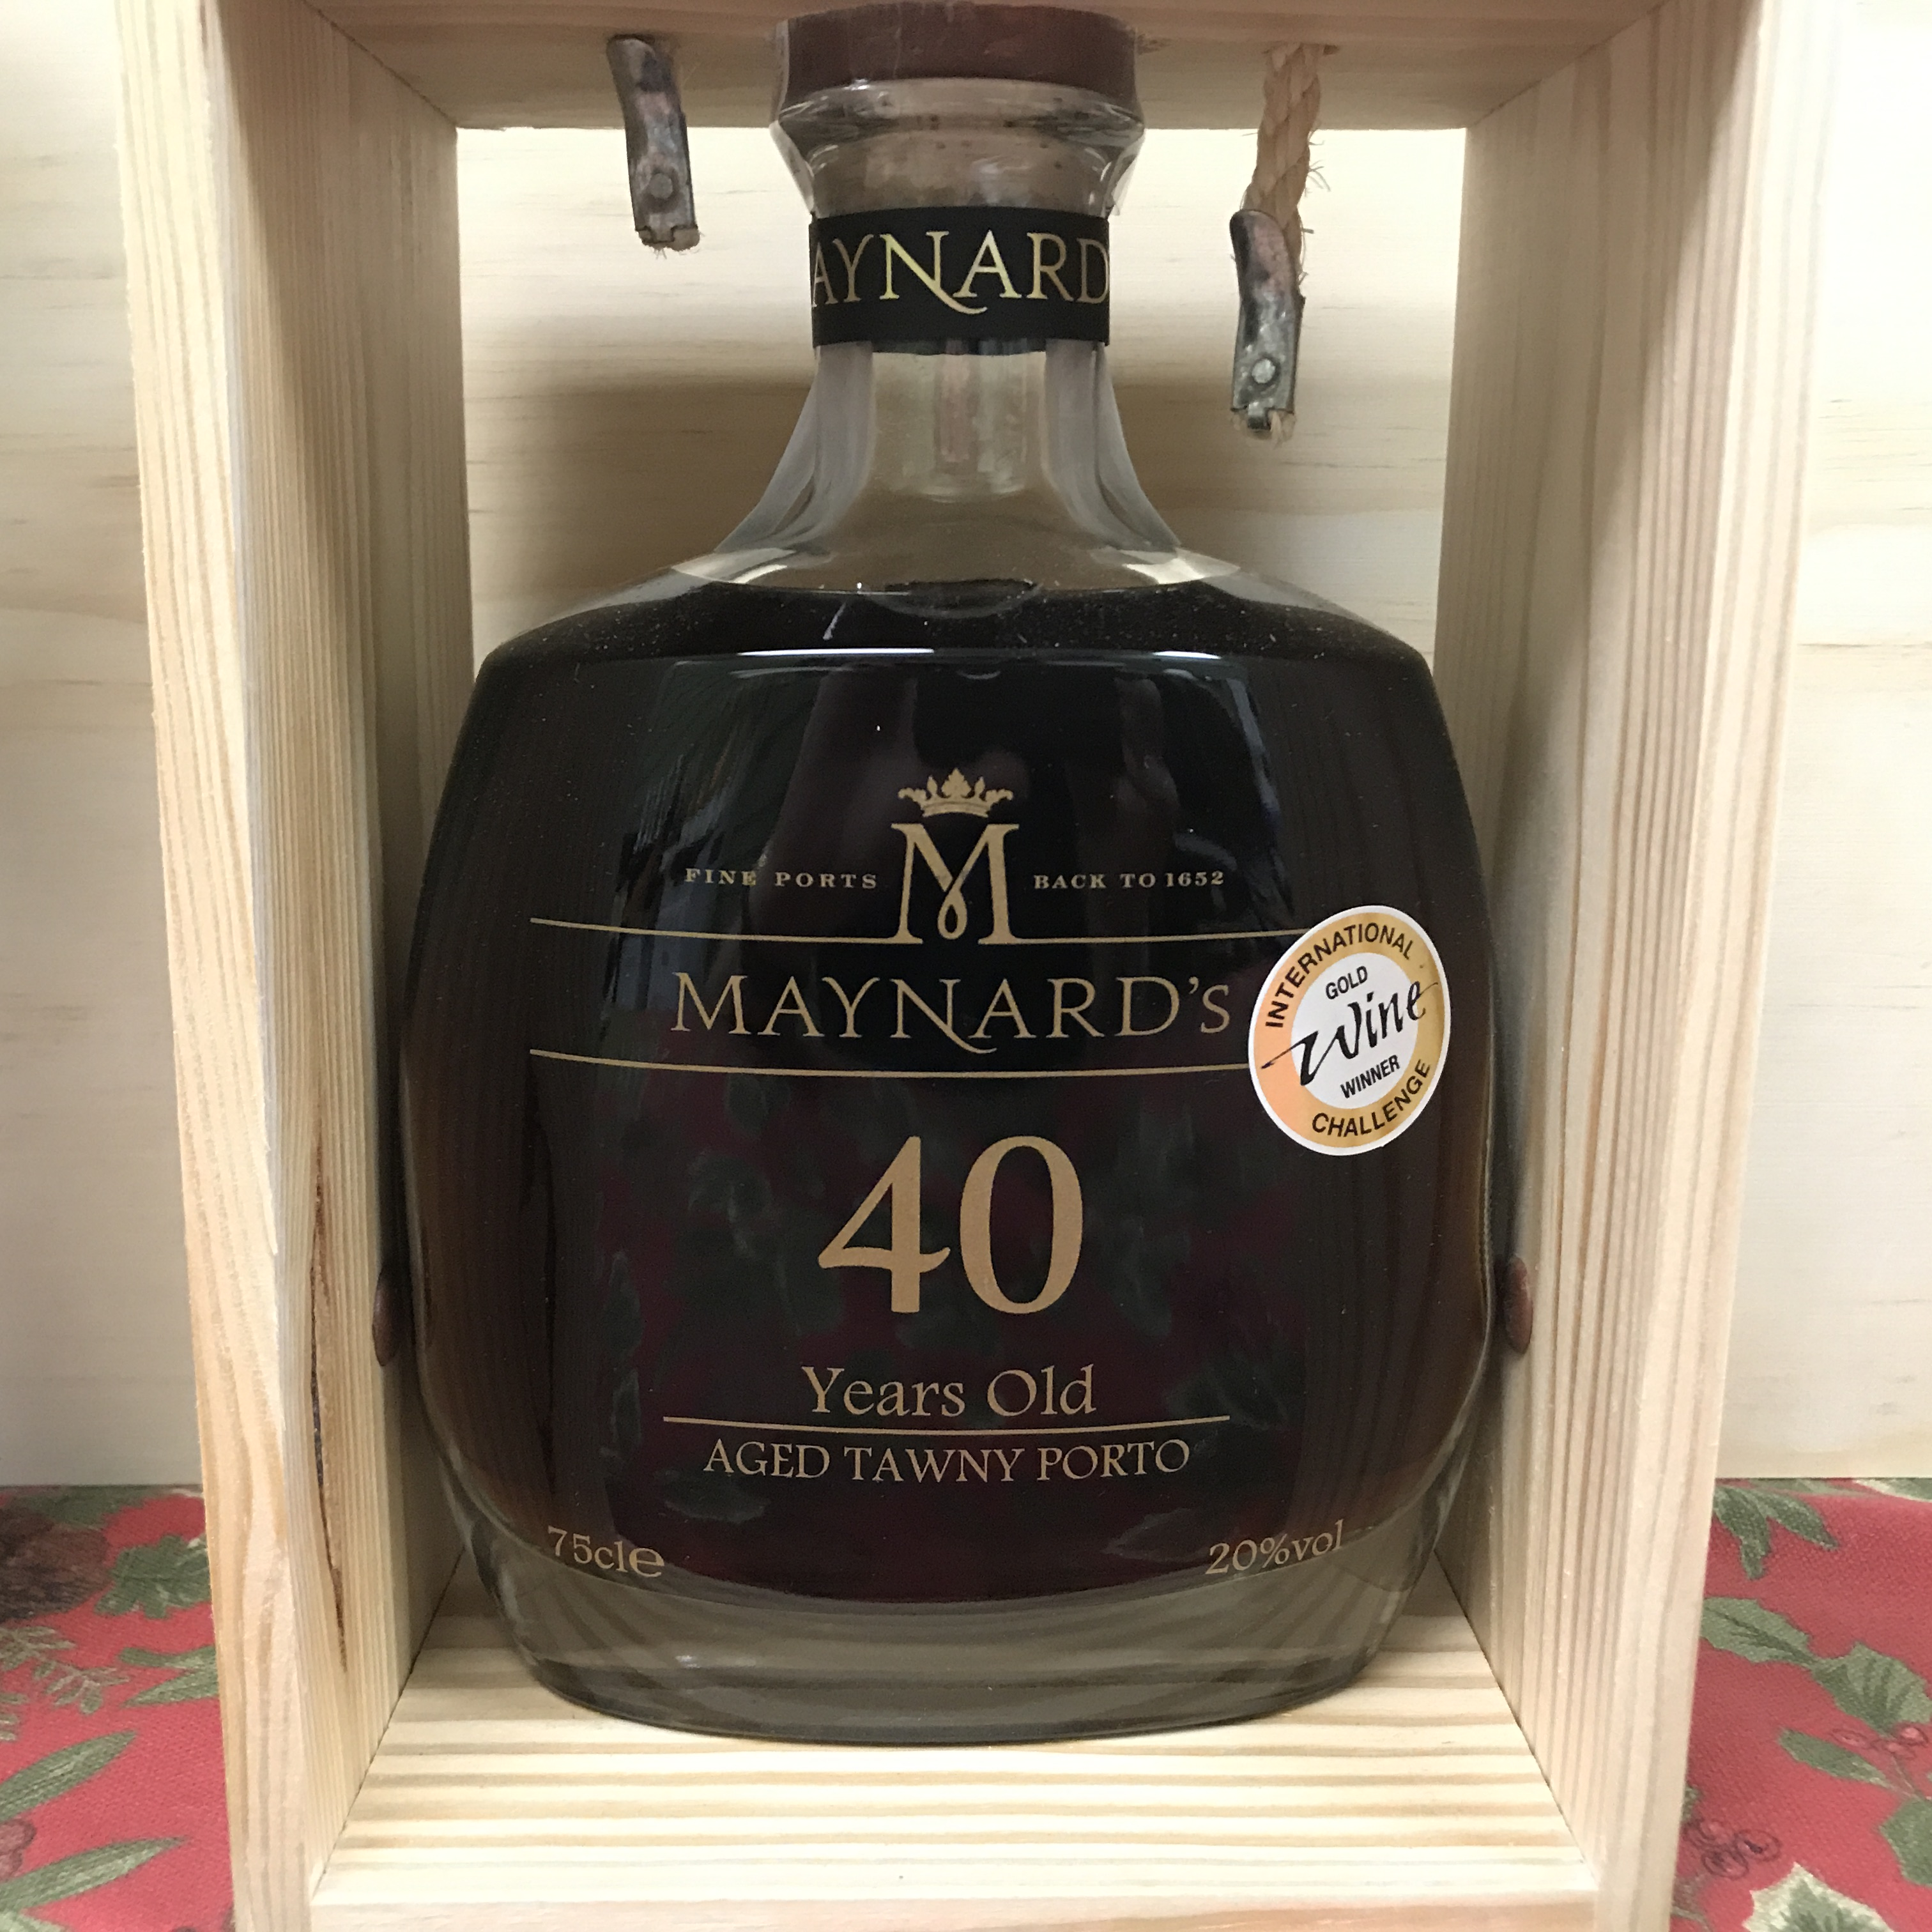 Maynard's 40 year old Aged Tawny Port